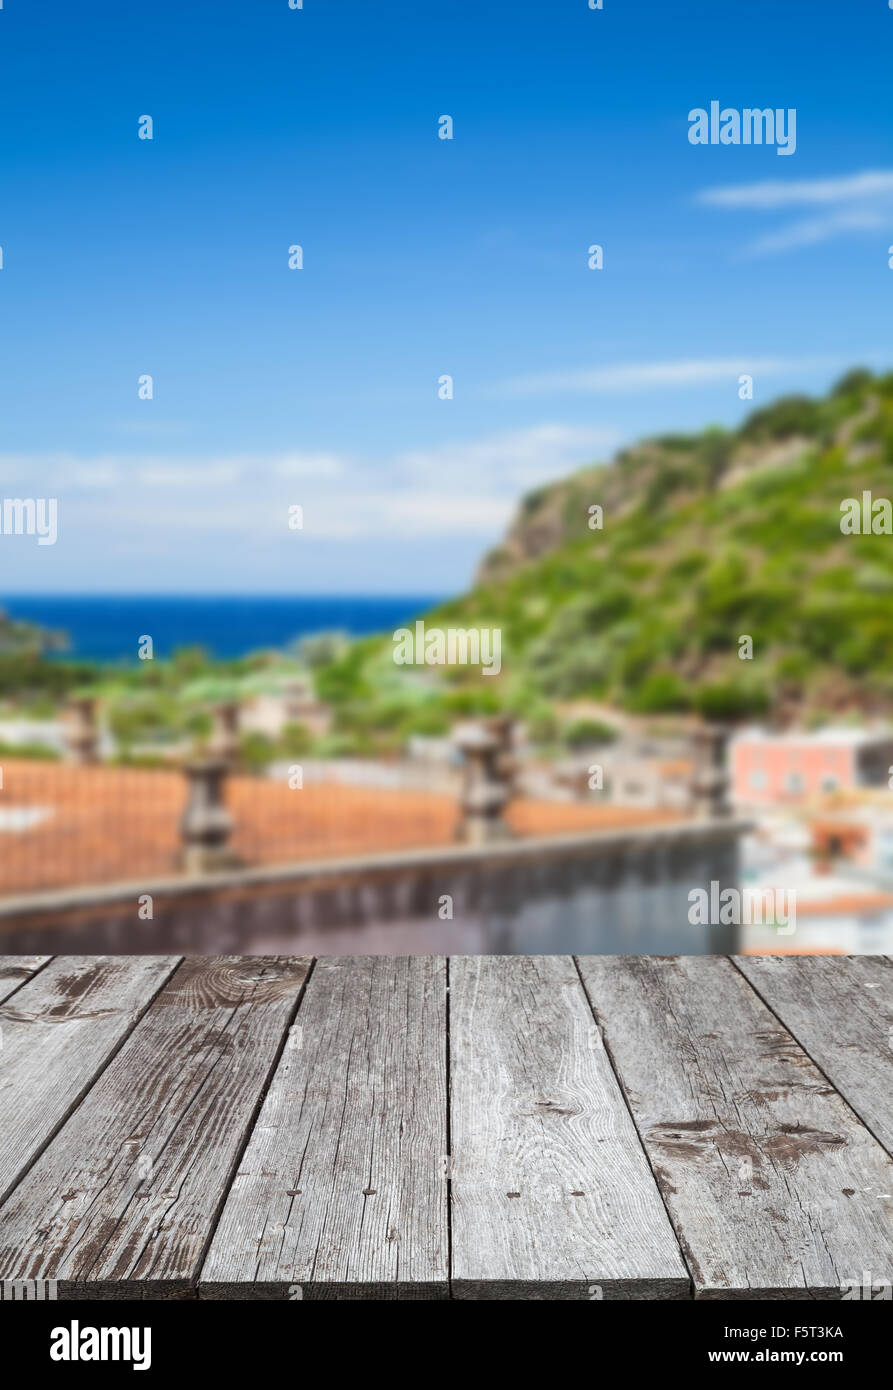 Empty wooden table perspective with blurred bright coastal town